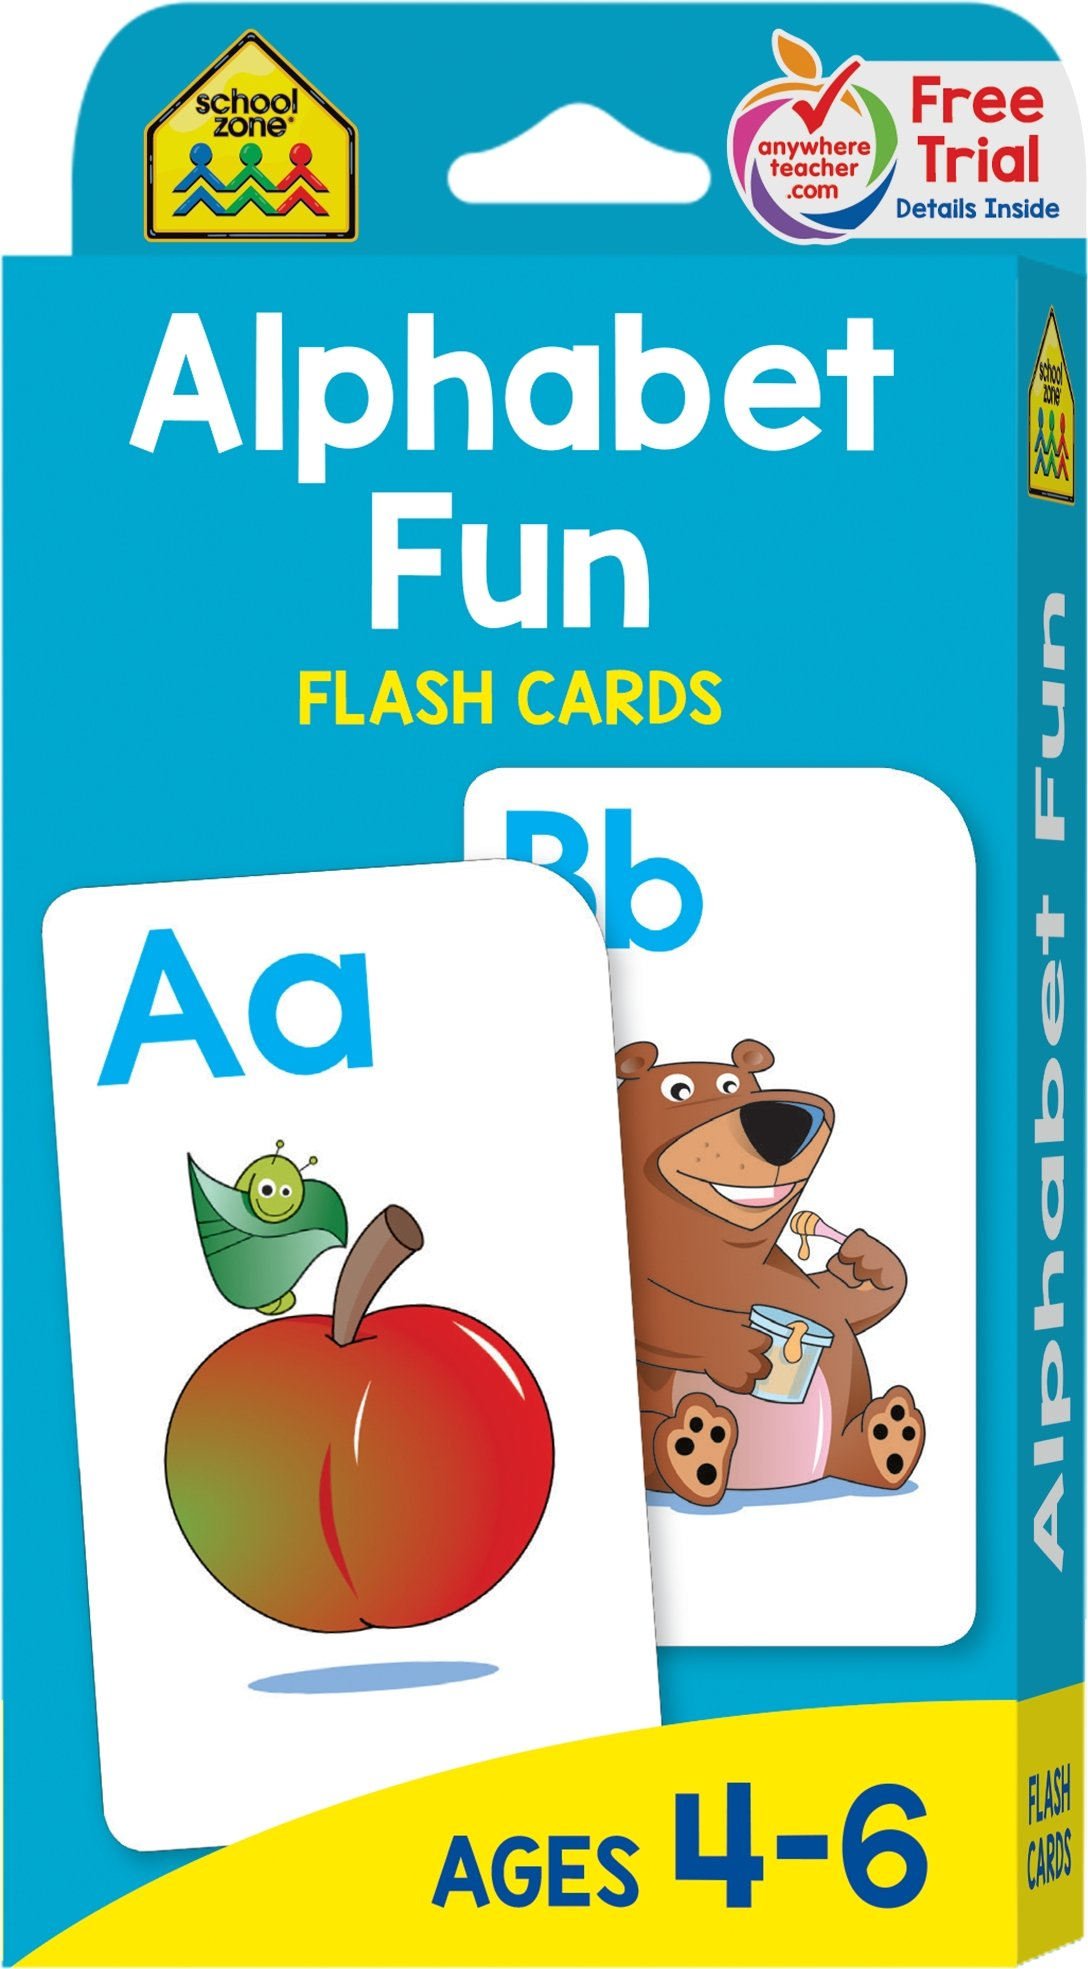 School Zone - Alphabet Fun Flash Cards - Ages 4 to six, Preschool to Kindergarten, ABCs, Uppercase and Lowercase Letters, Spelling, and More